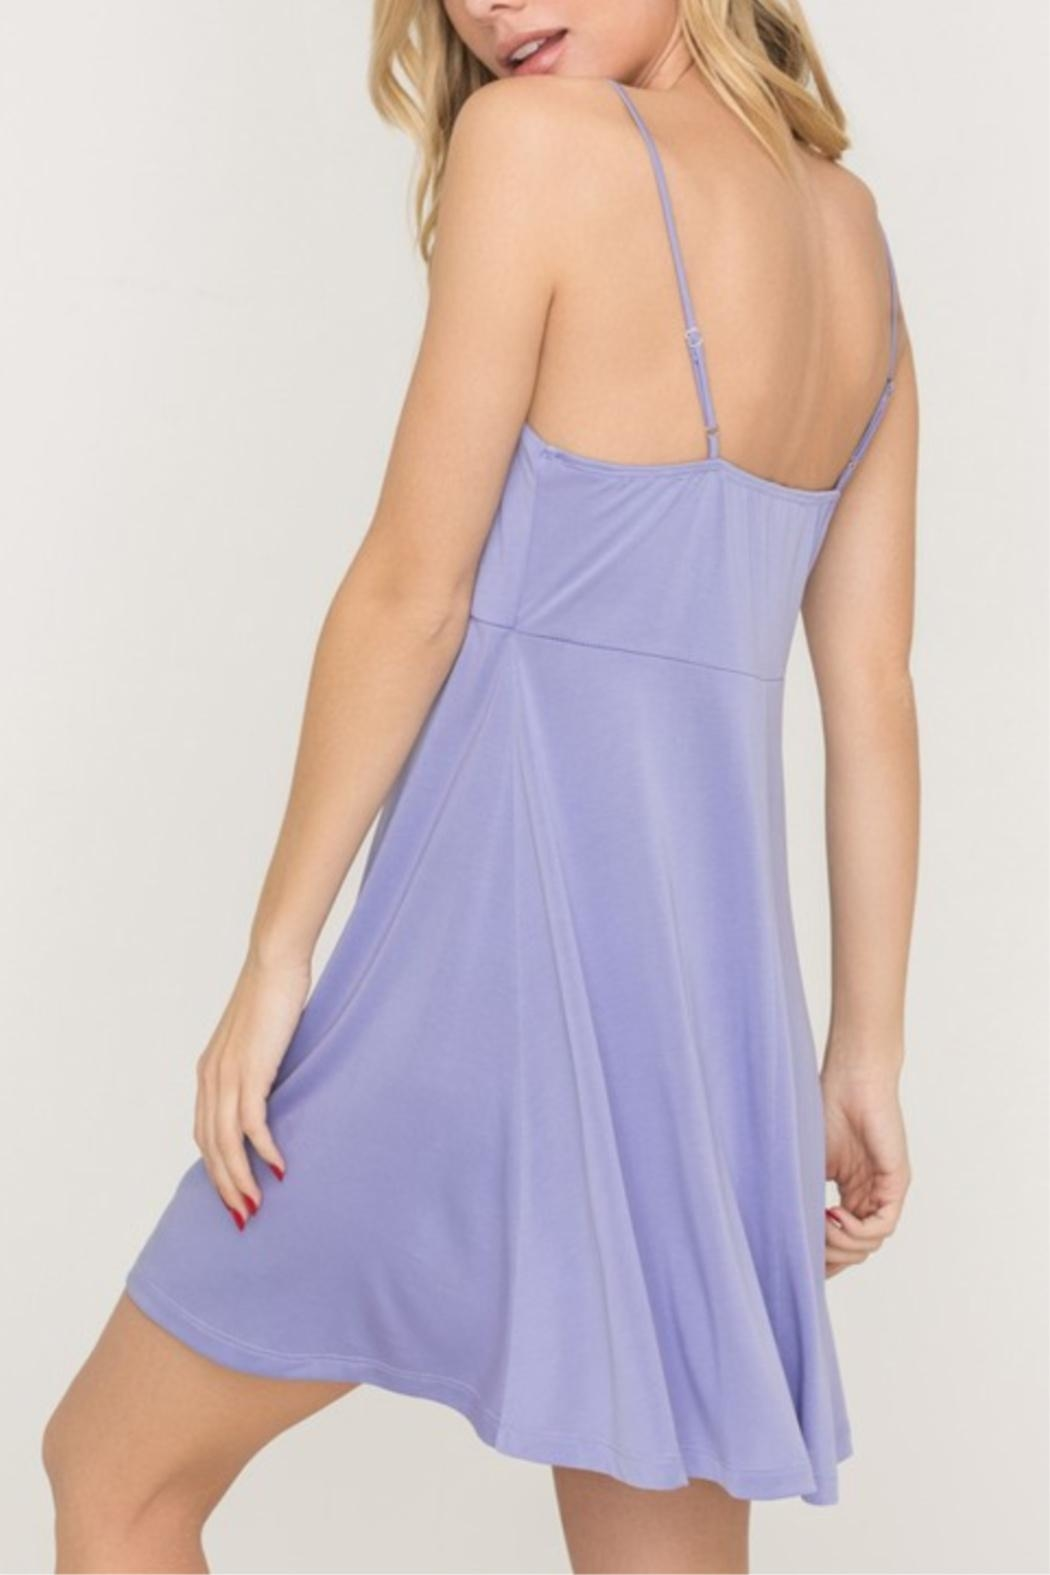 Lush Tie-Accent Flaired Mini-Dress - Side Cropped Image